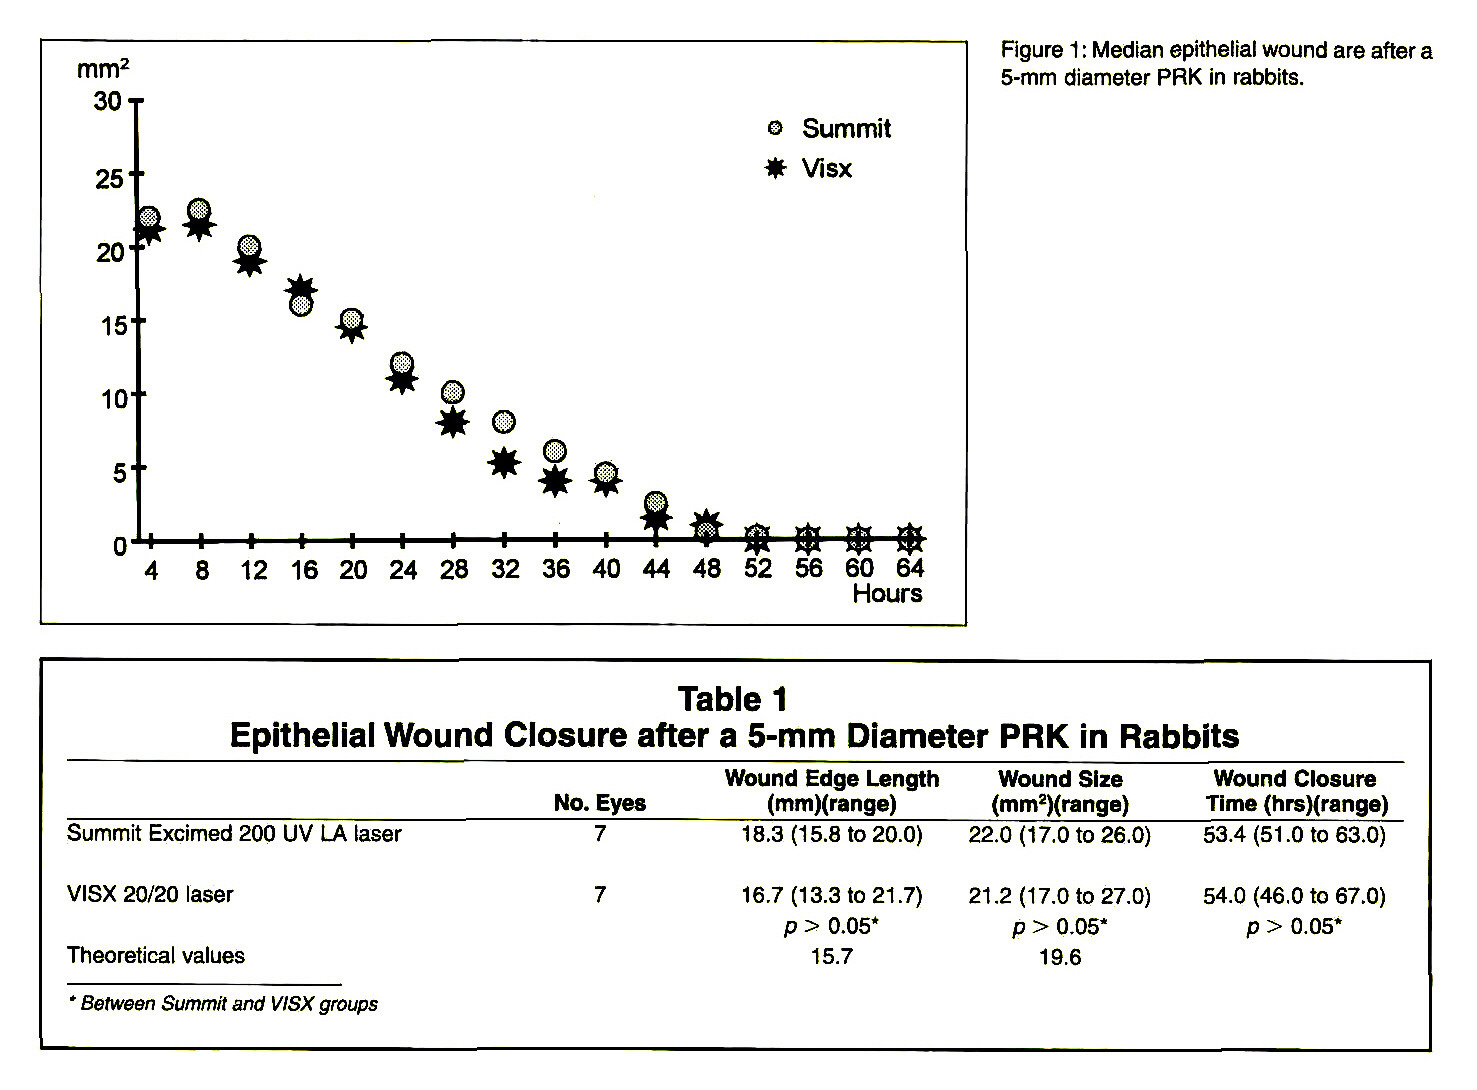 Figure 1 : Median epithelial wound are after a 5-mm diameter PRK in rabbits.Table 1Epithelial Wound Closure after a 5-mm Diameter PRK in Rabbits